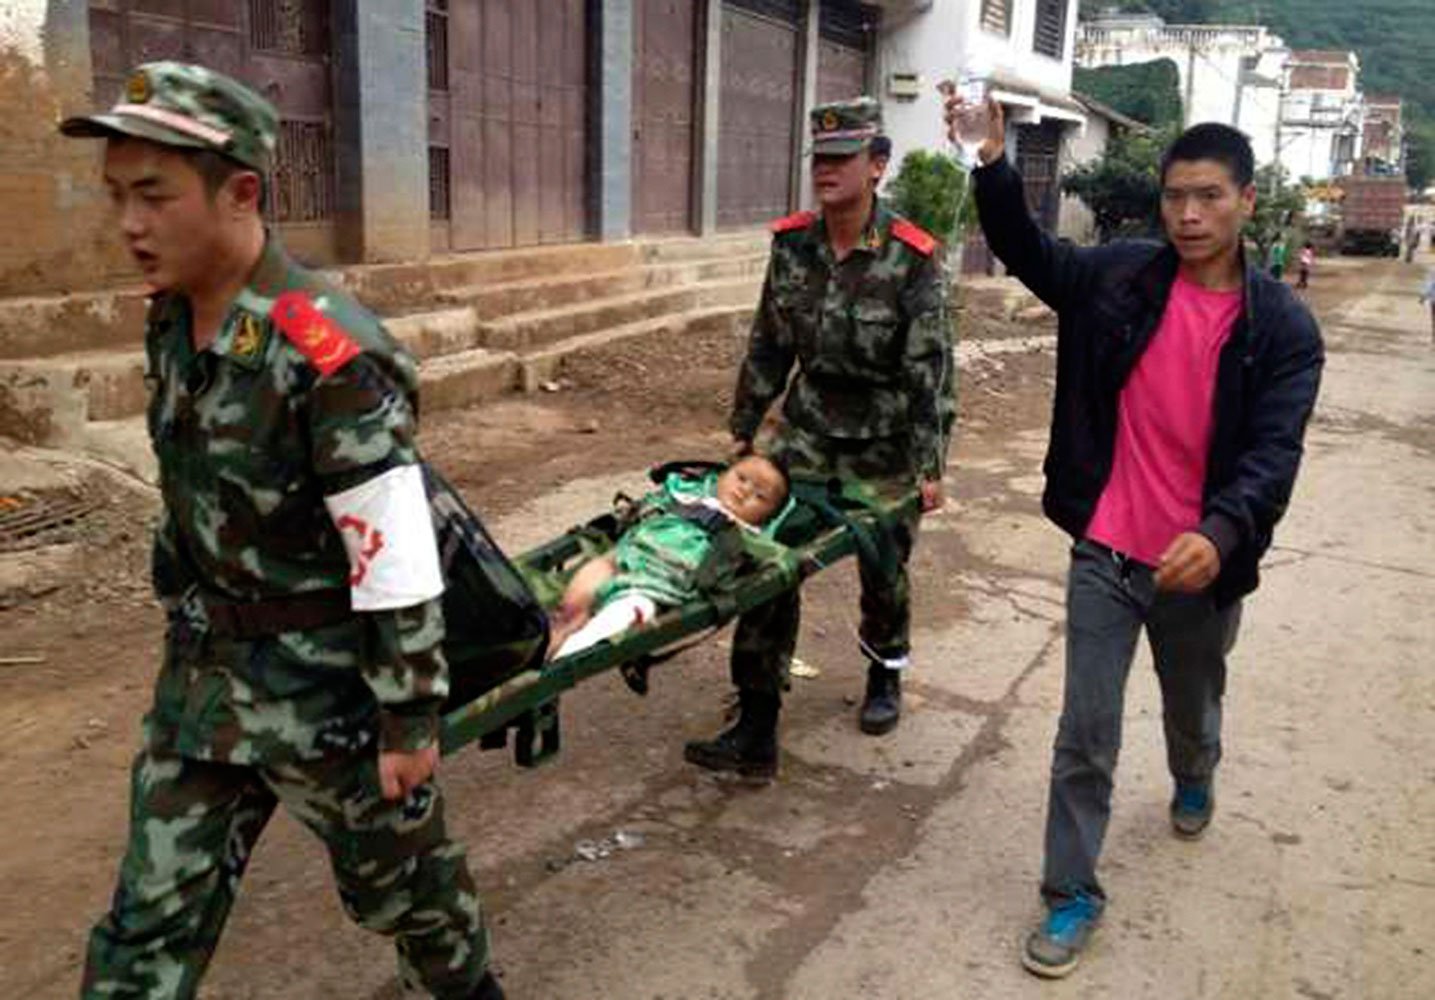 Paramilitary policemen carry an injured child on a stretcher as they carry out rescue operations after an earthquake hit Longtoushan township of Ludian county, Yunnan province Aug. 3, 2014.